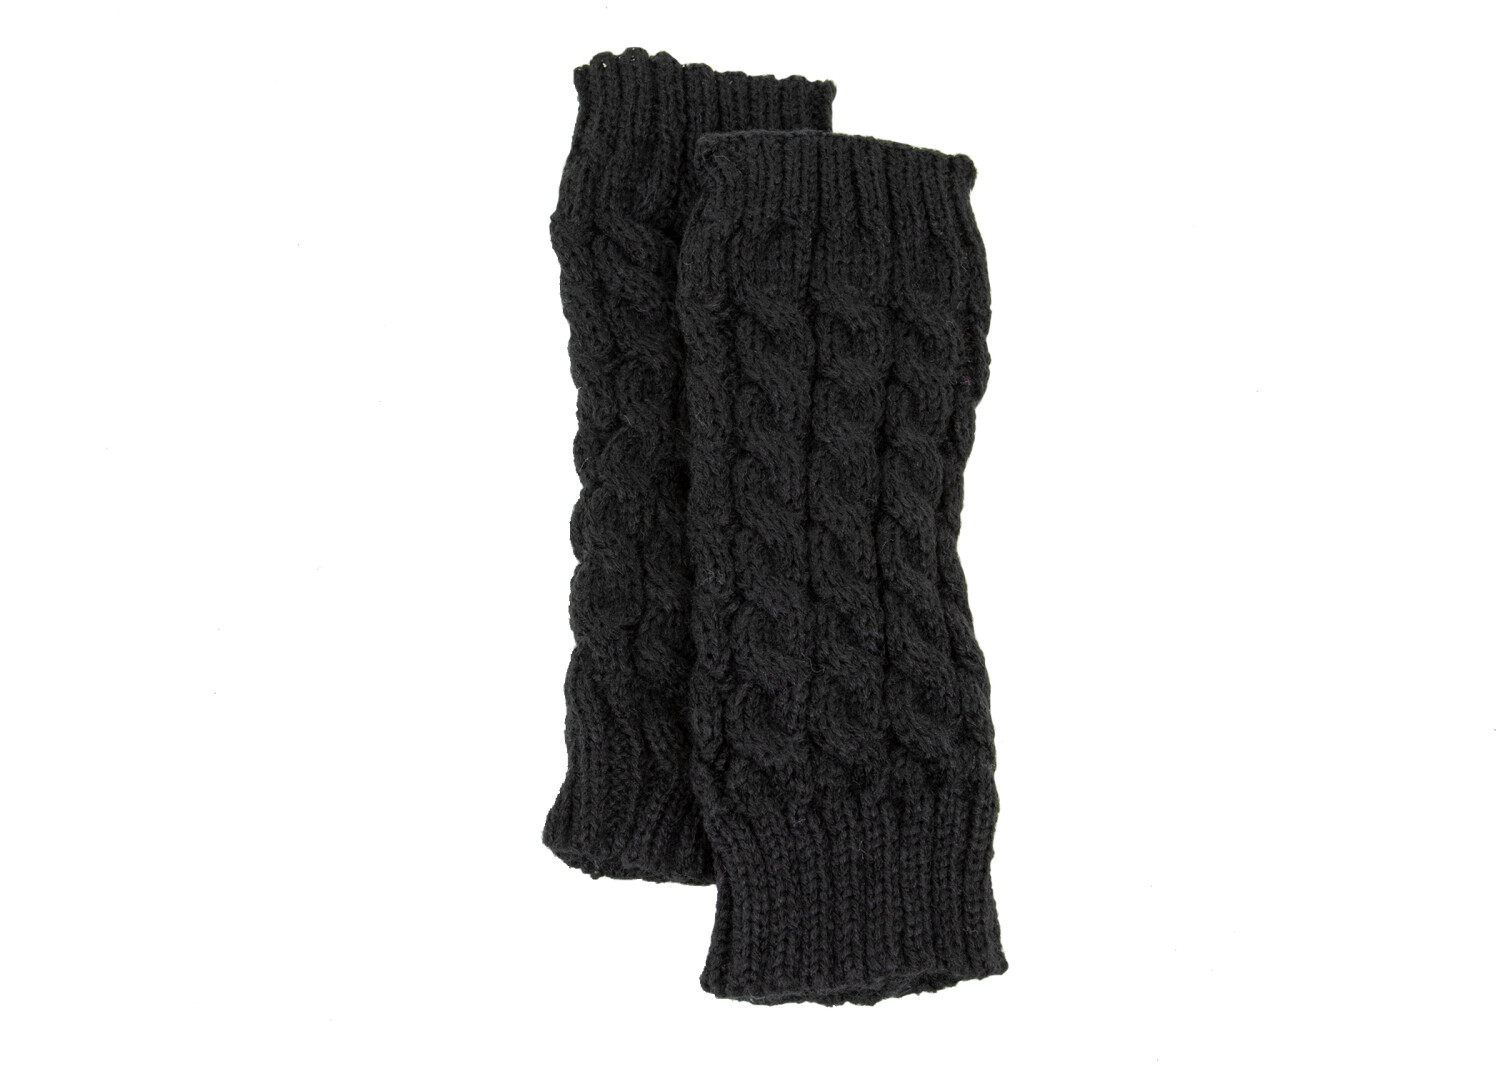 Exotic Identity Fingerless Gloves Cable Knit Tahoe Cold Weather Wear for Women - M - Black